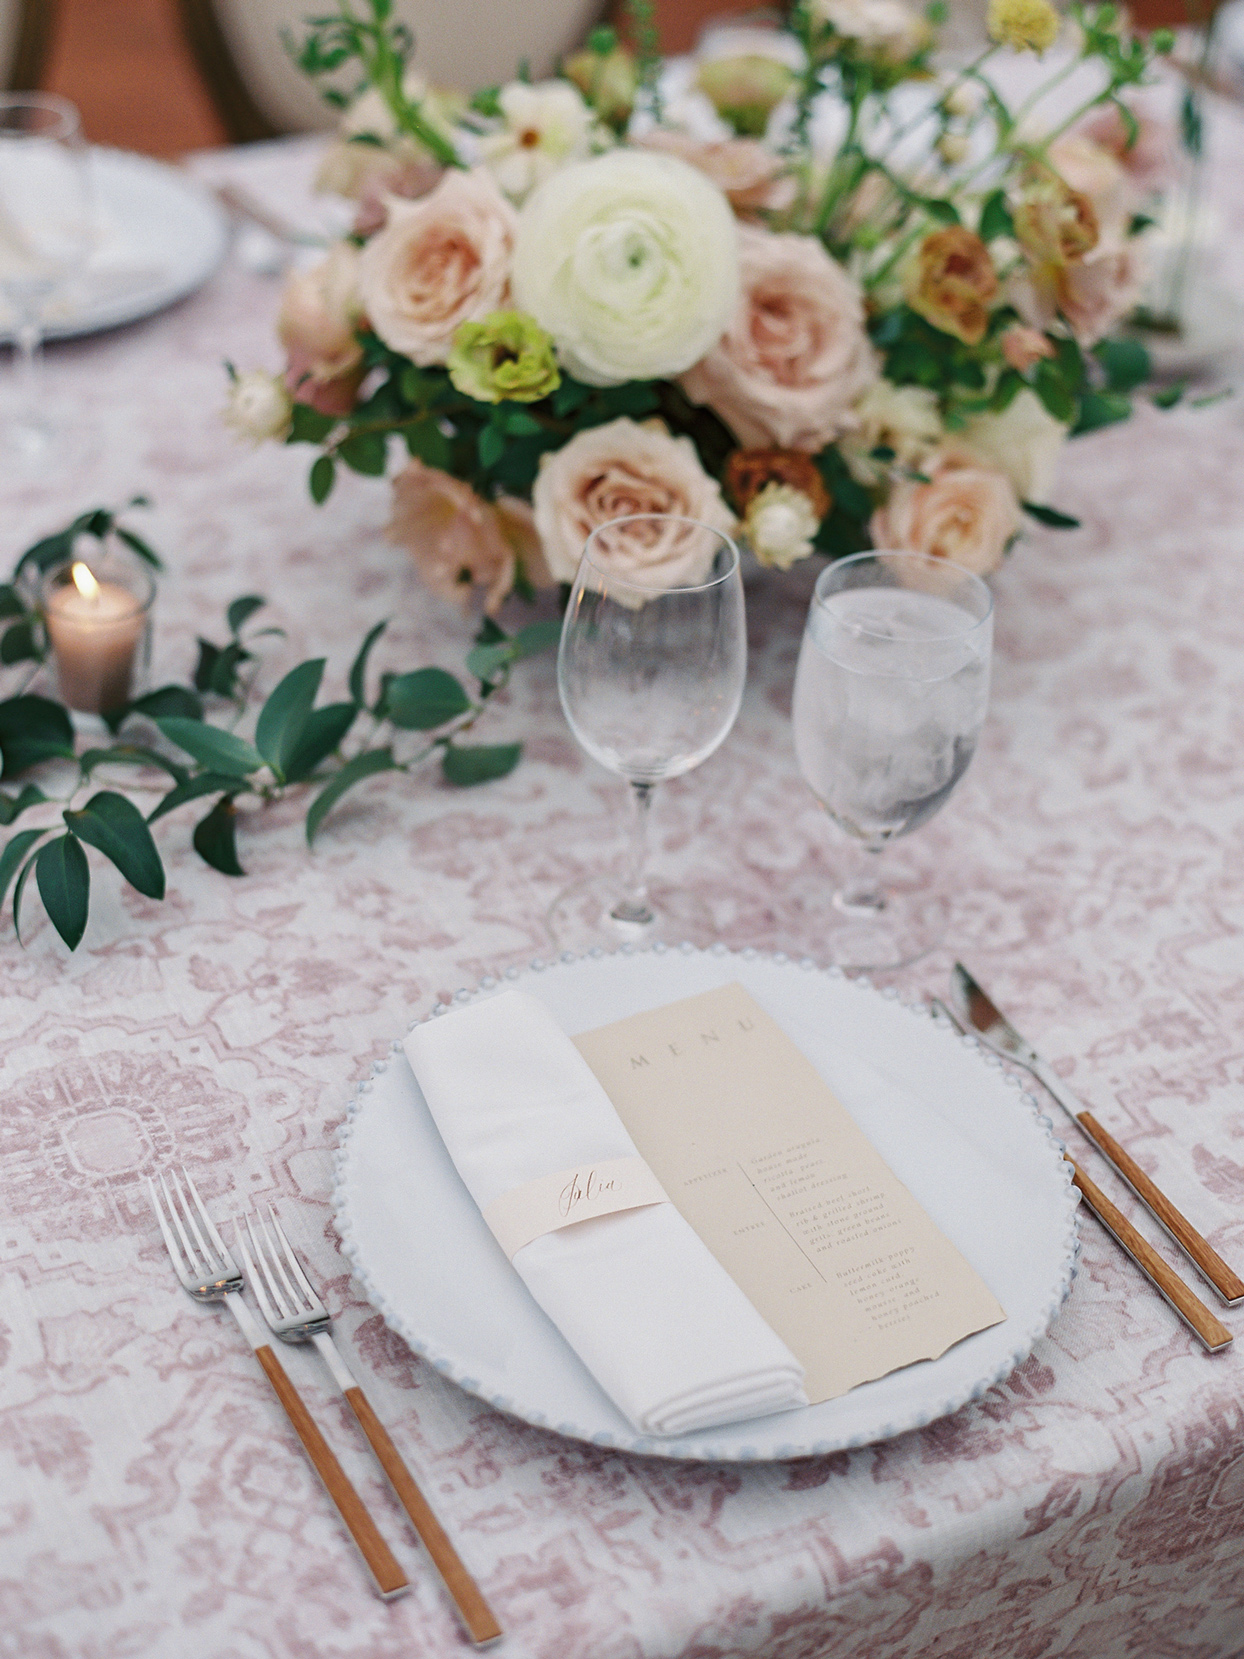 Wedding place setting with patterned linens paired with white napkins